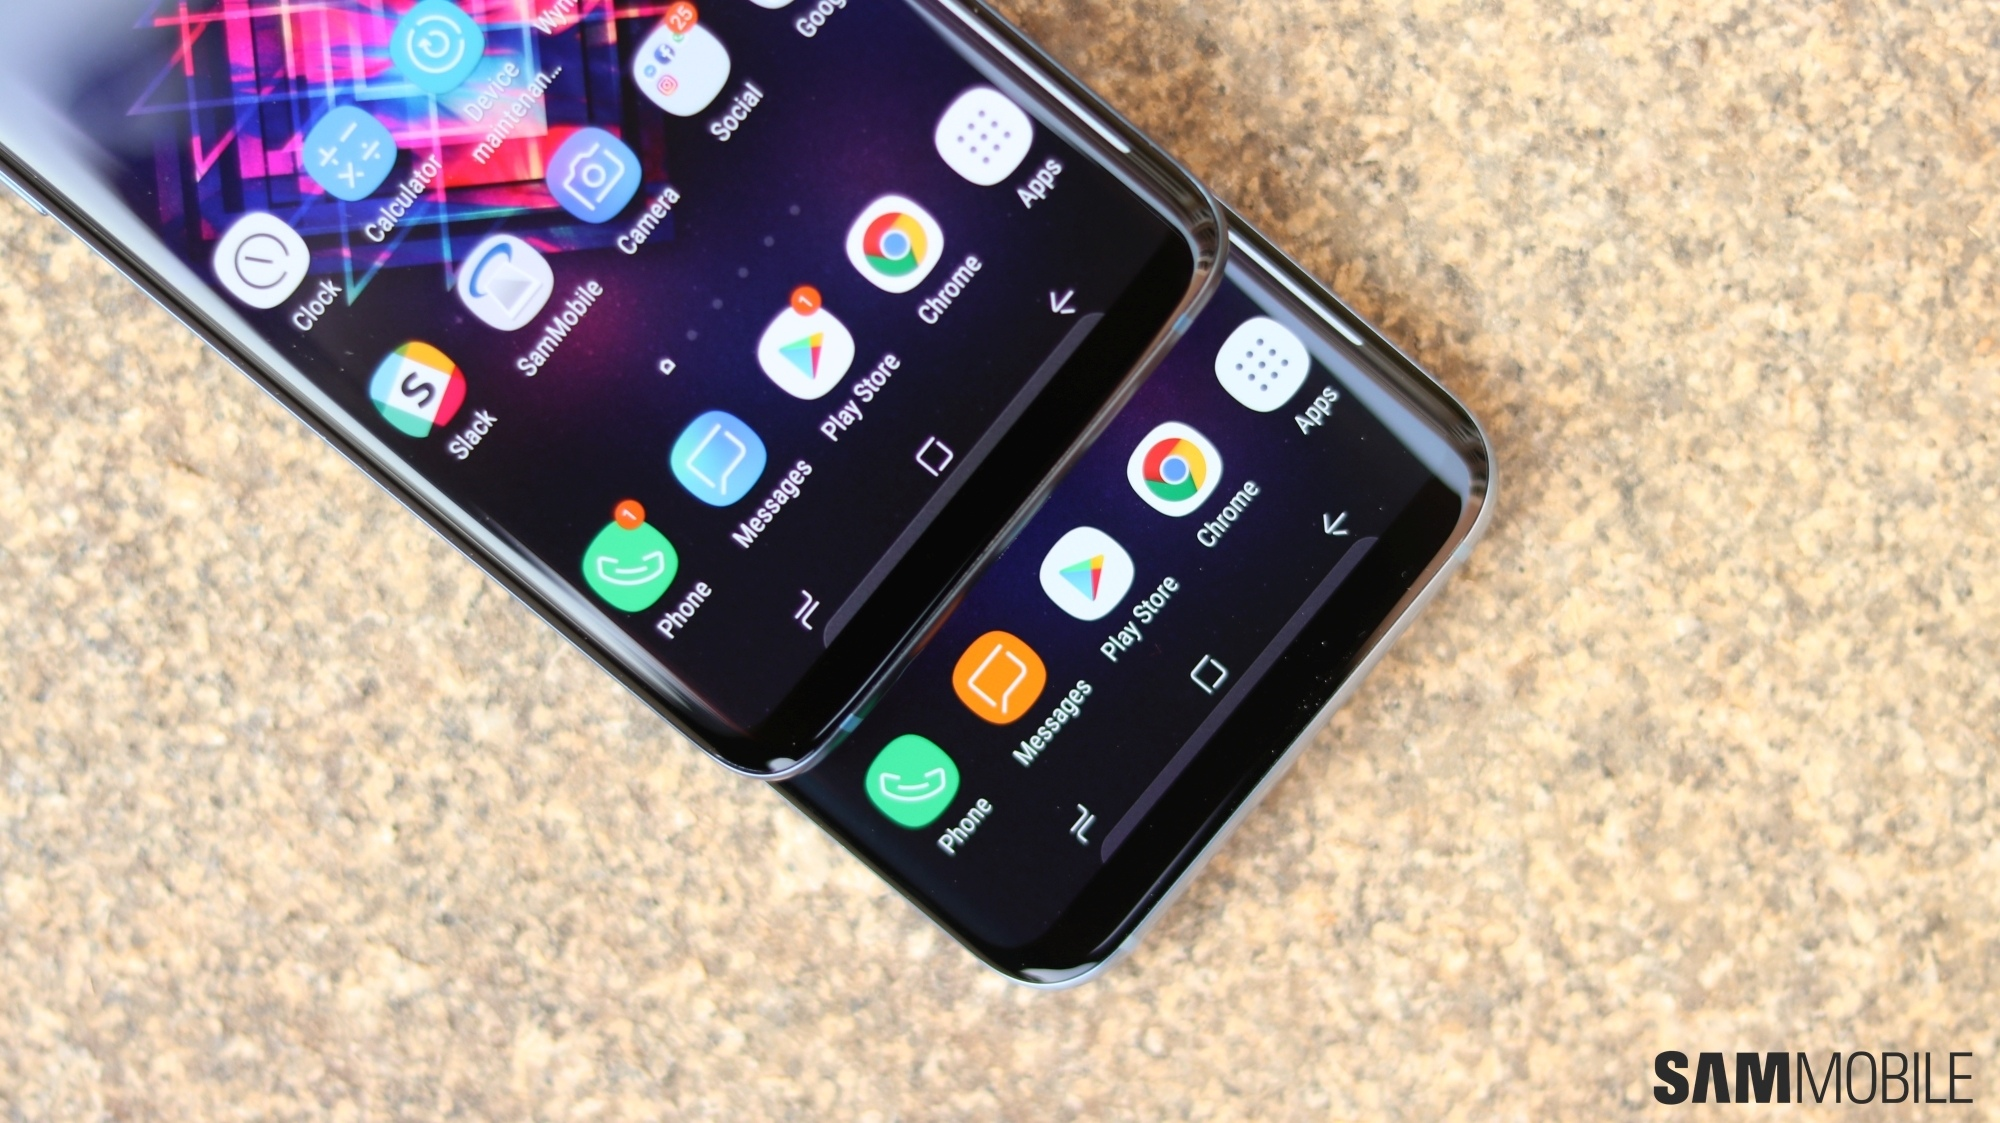 New report brings more details about the Galaxy S10 prices - SamMobile